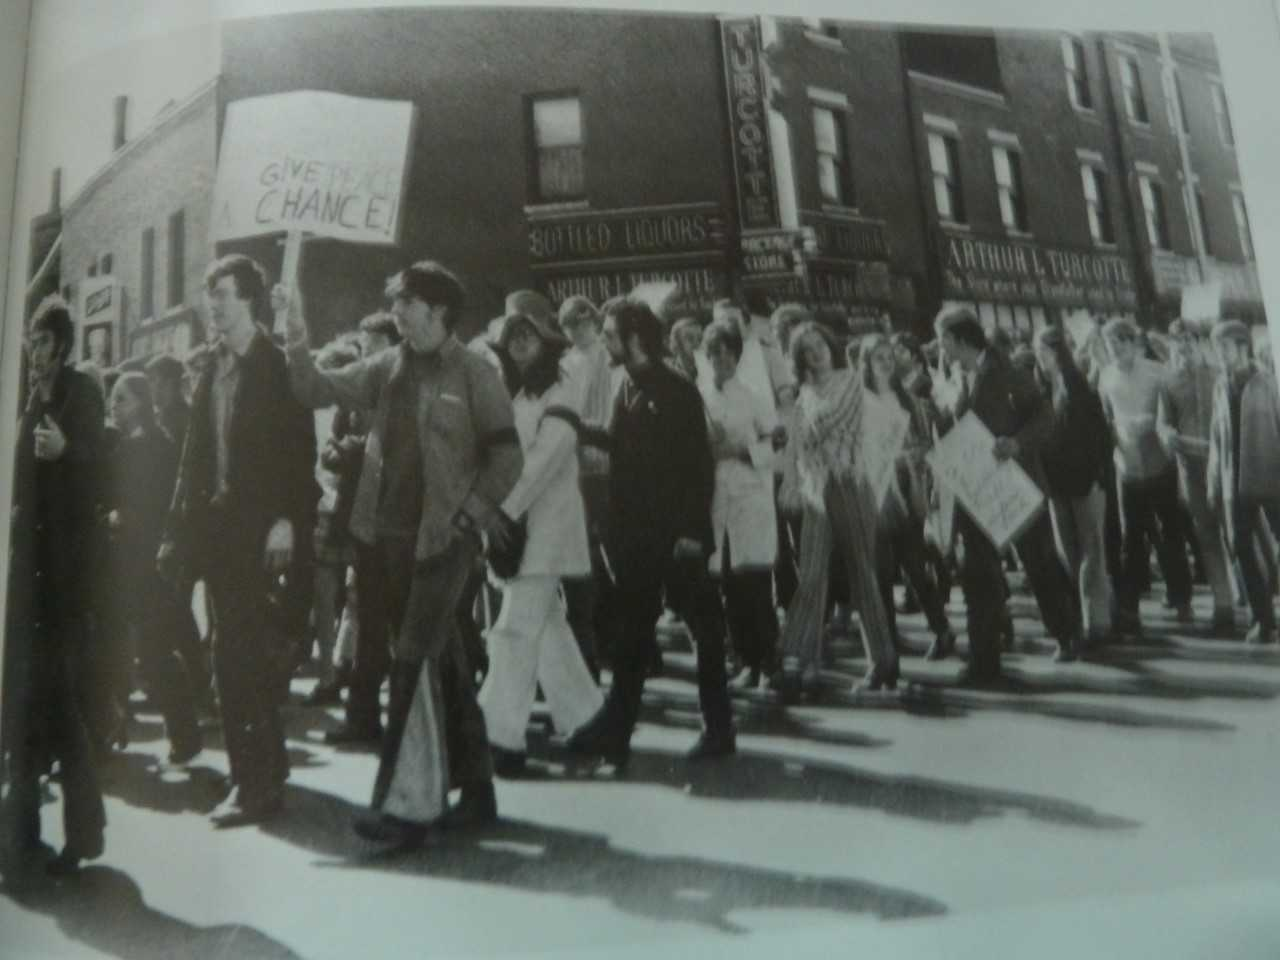 Students from the two colleges in Lowell marching for peace. (Courtesy of UMass Lowell, from  To Enrich and to Serve: The Centennial History of the University of Massachusetts, Lowell , by Mary H. Blewett and Christine McKenna [Dunlap])